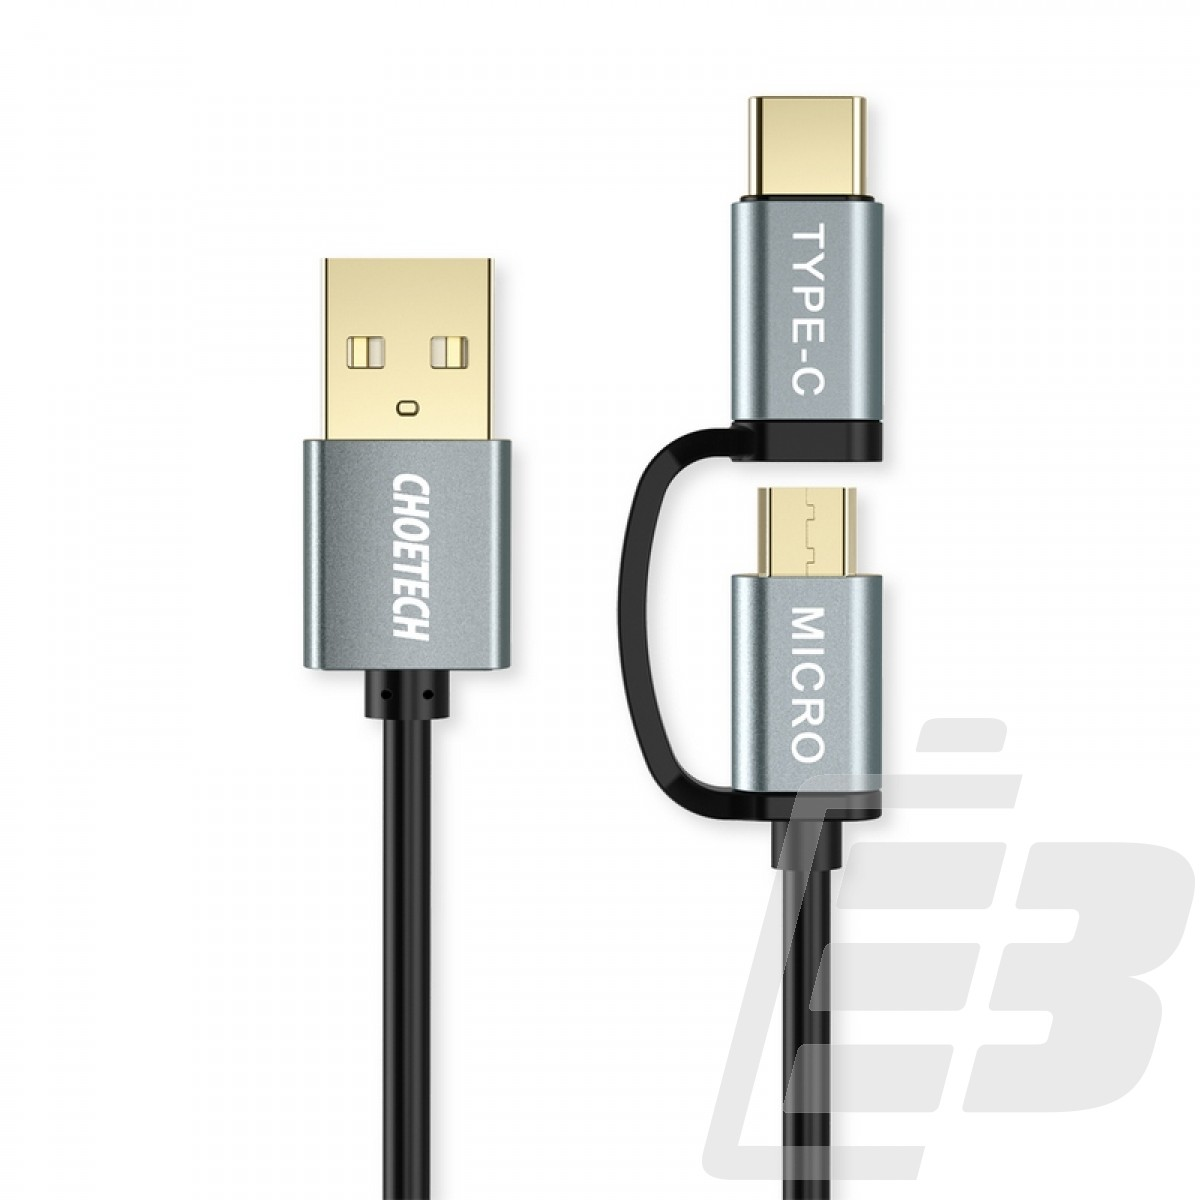 Choetech 2 in 1 USB-C and Micro USB-Cable 1